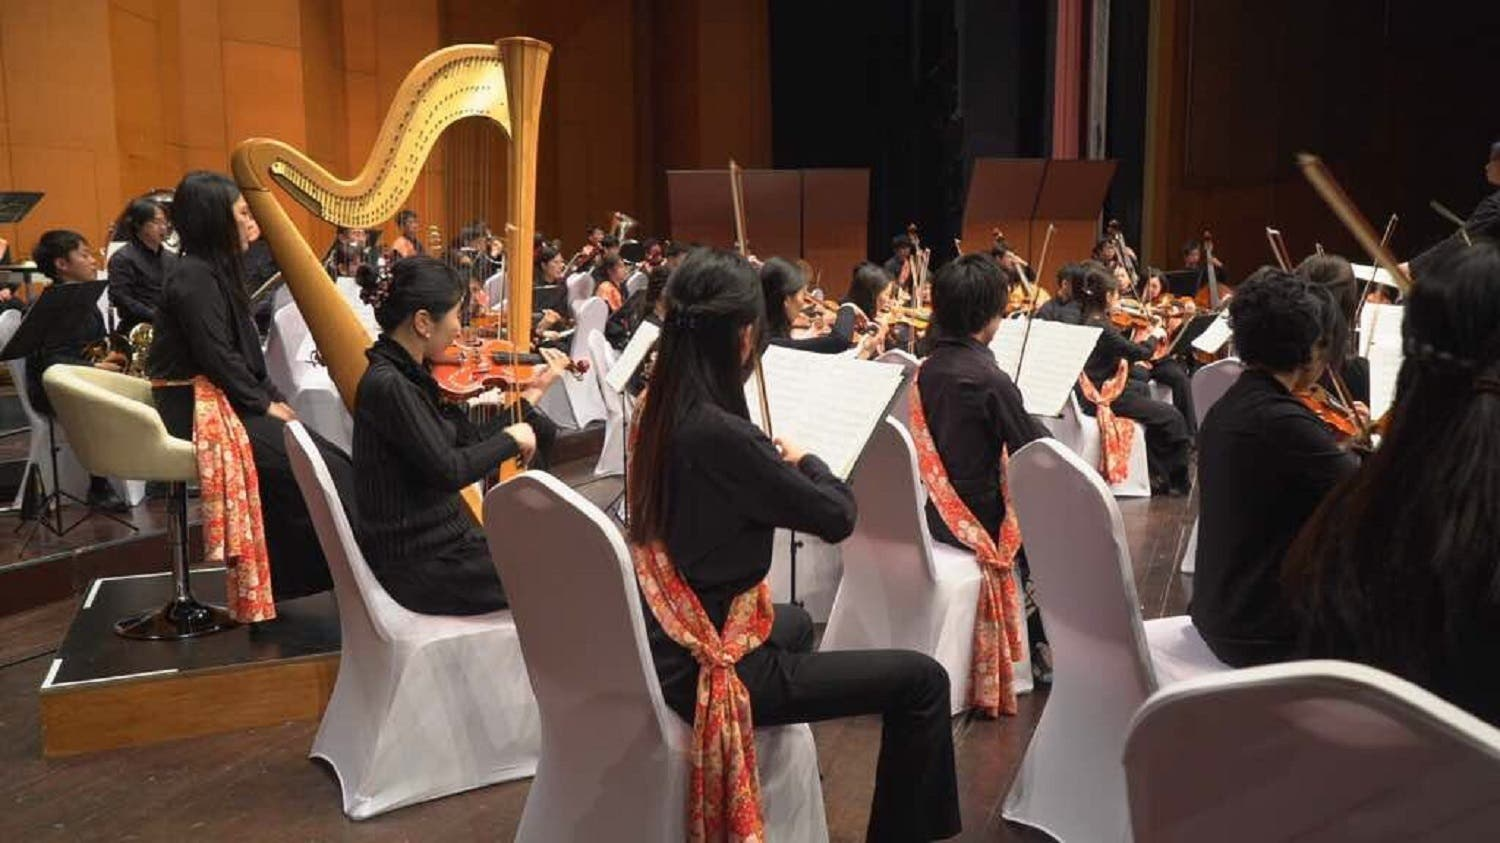 The more than 80-strong Japanese orchestra comprised instrumentalists and choir artists. (Supplied)